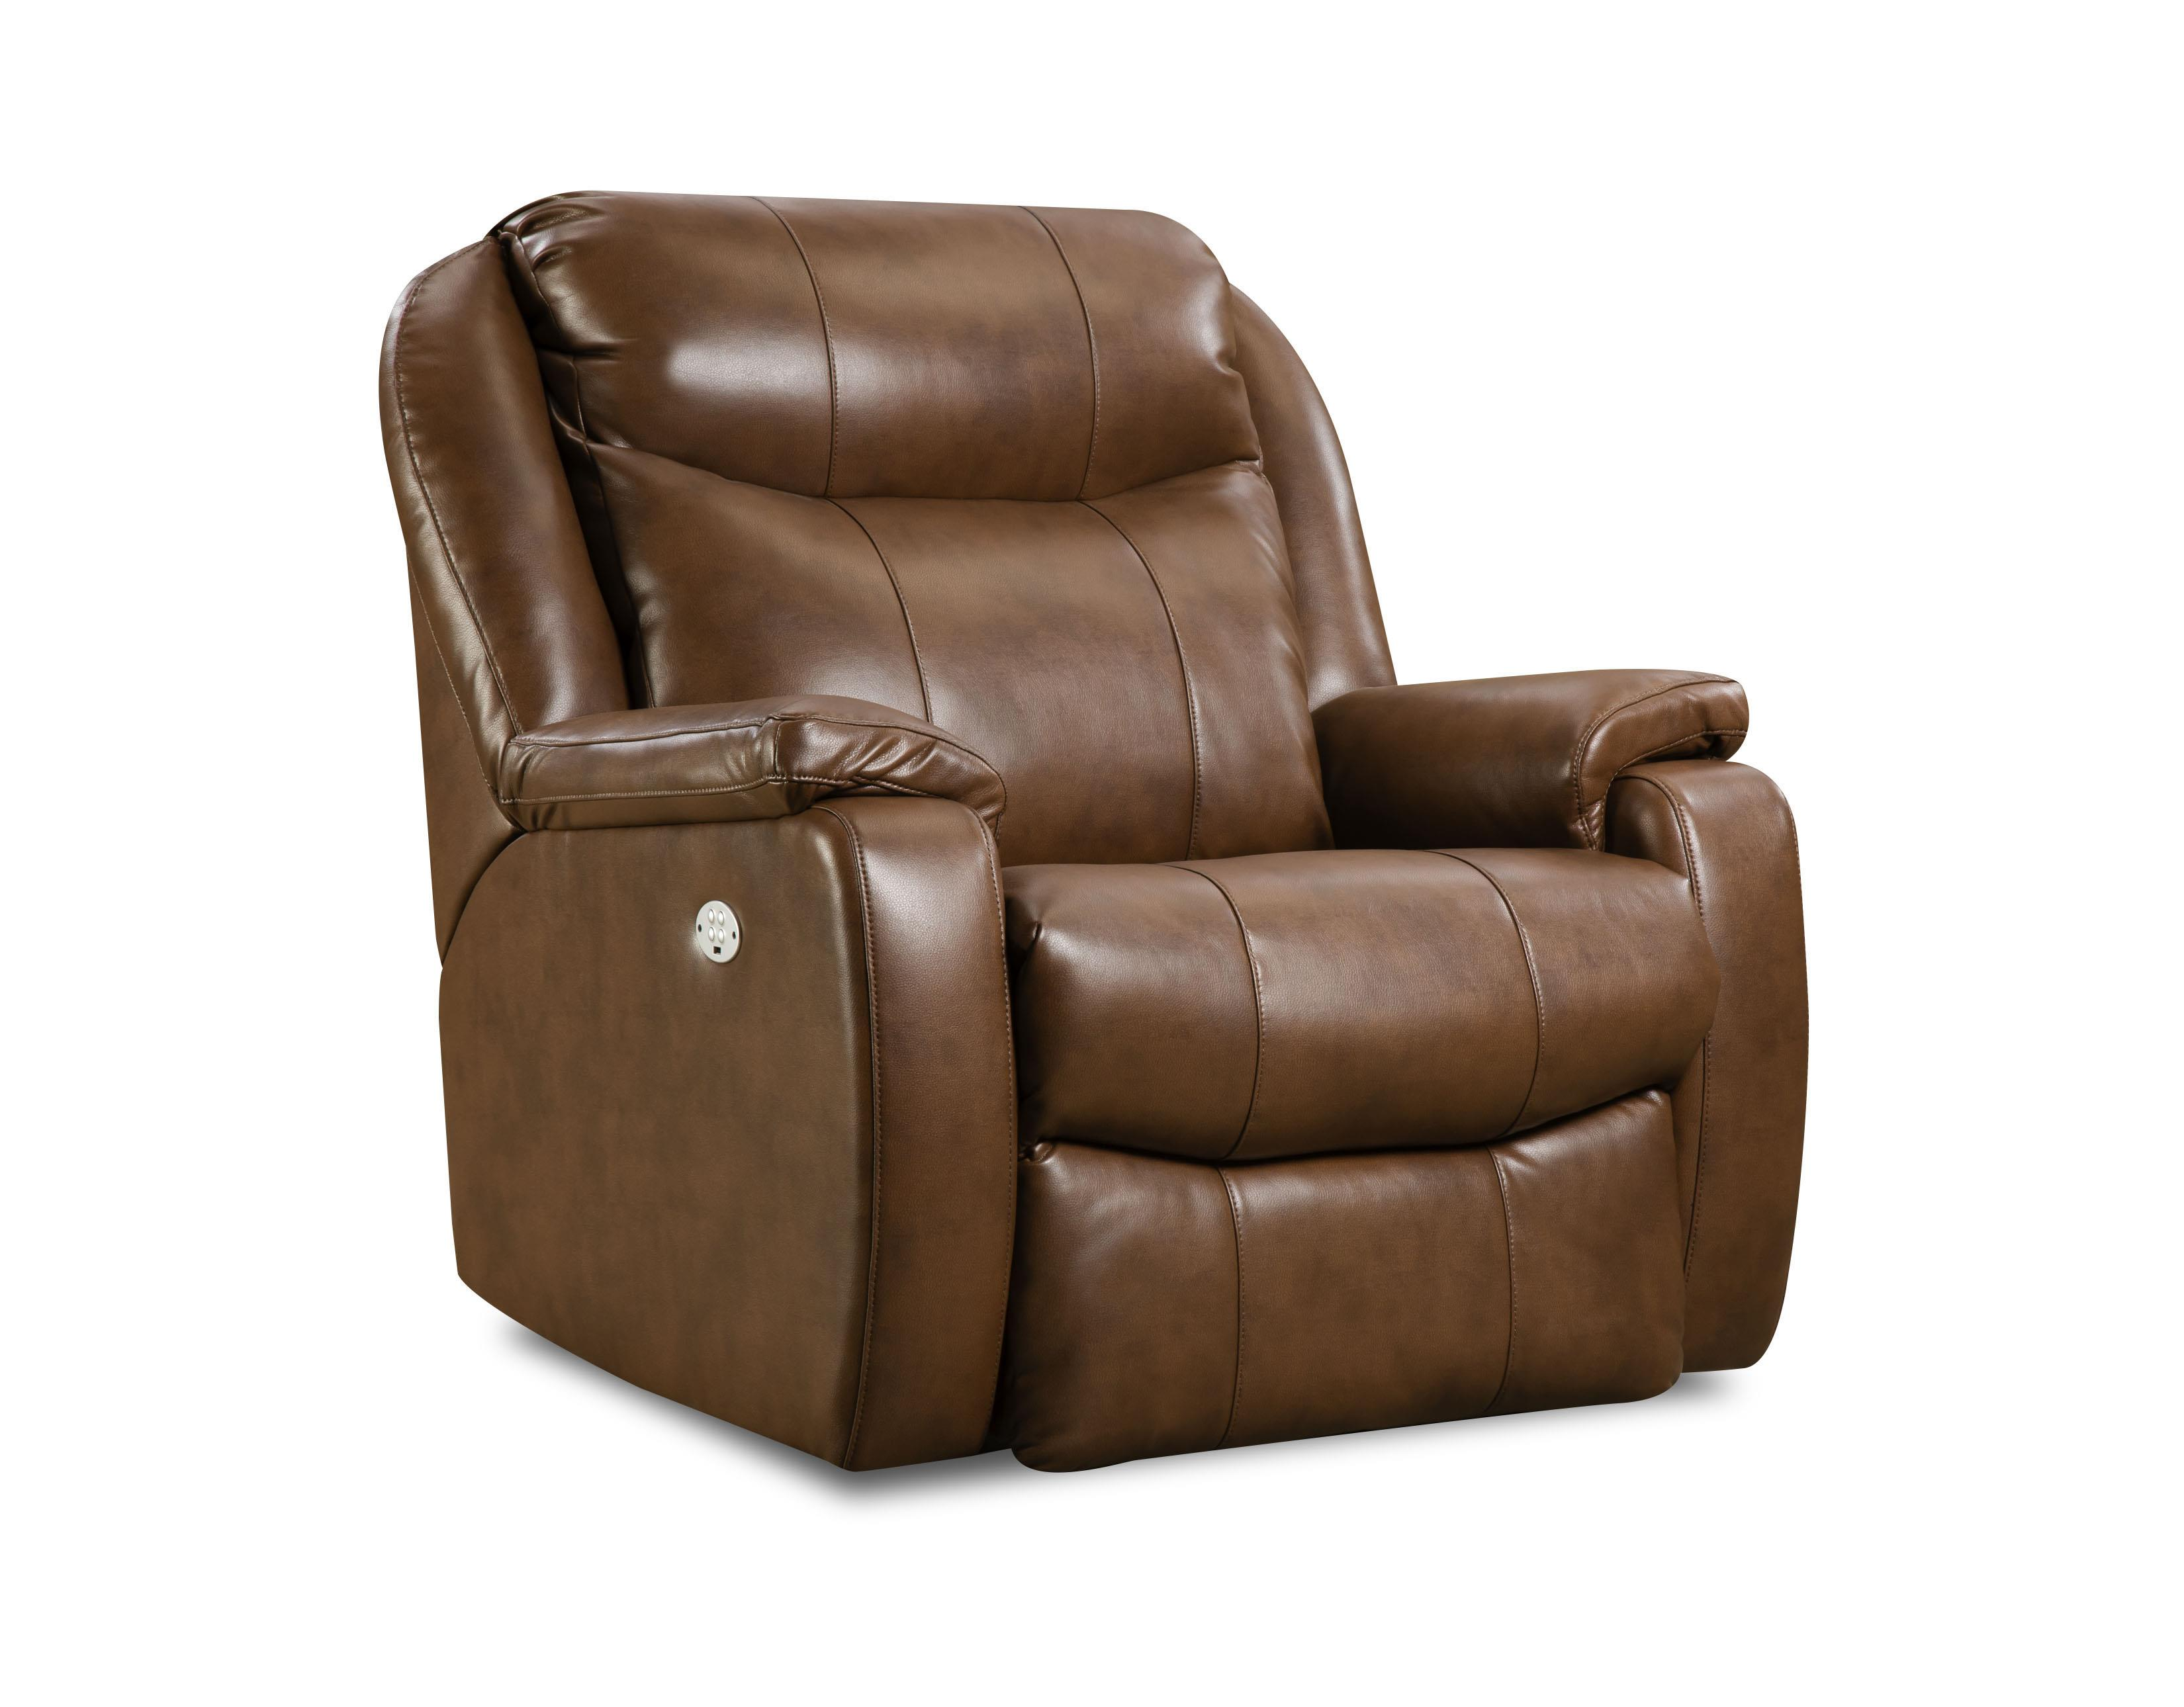 Southern Motion Recliners Hercules Big Manu0027s Power Recliner  sc 1 st  Darvin Furniture & Leather and Faux Leather Furniture | Orland Park Chicago IL ... islam-shia.org